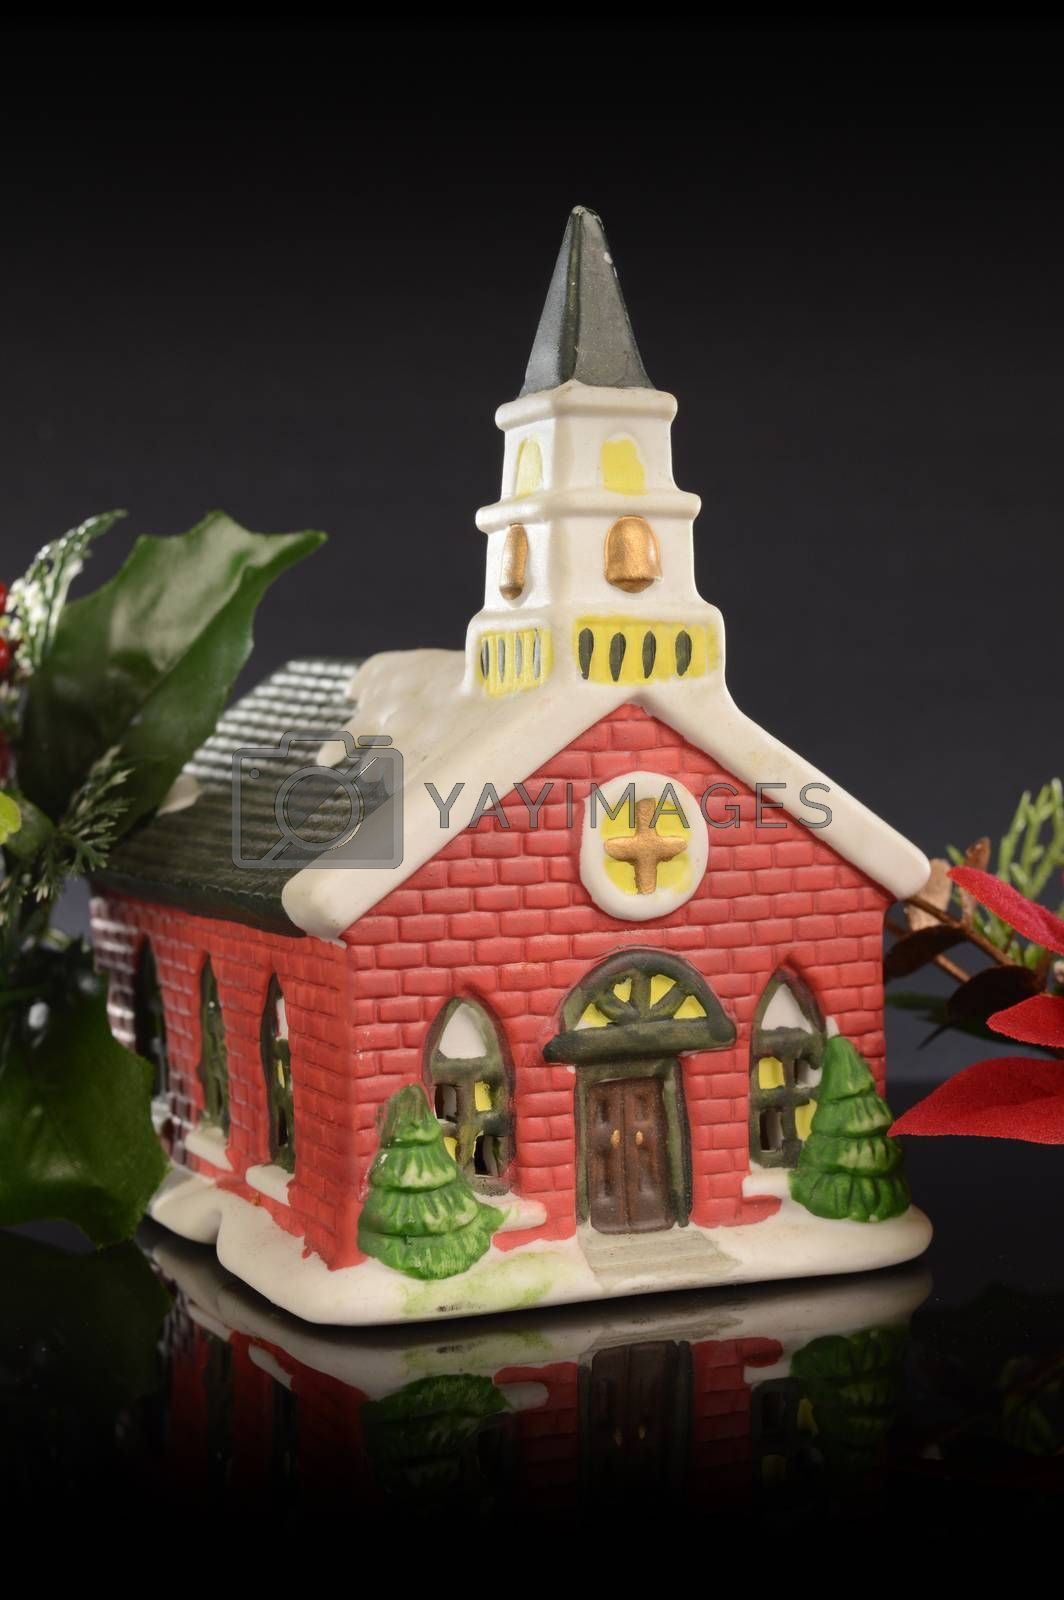 A closeup image of a Christmas church scene decorated for the holiday season.